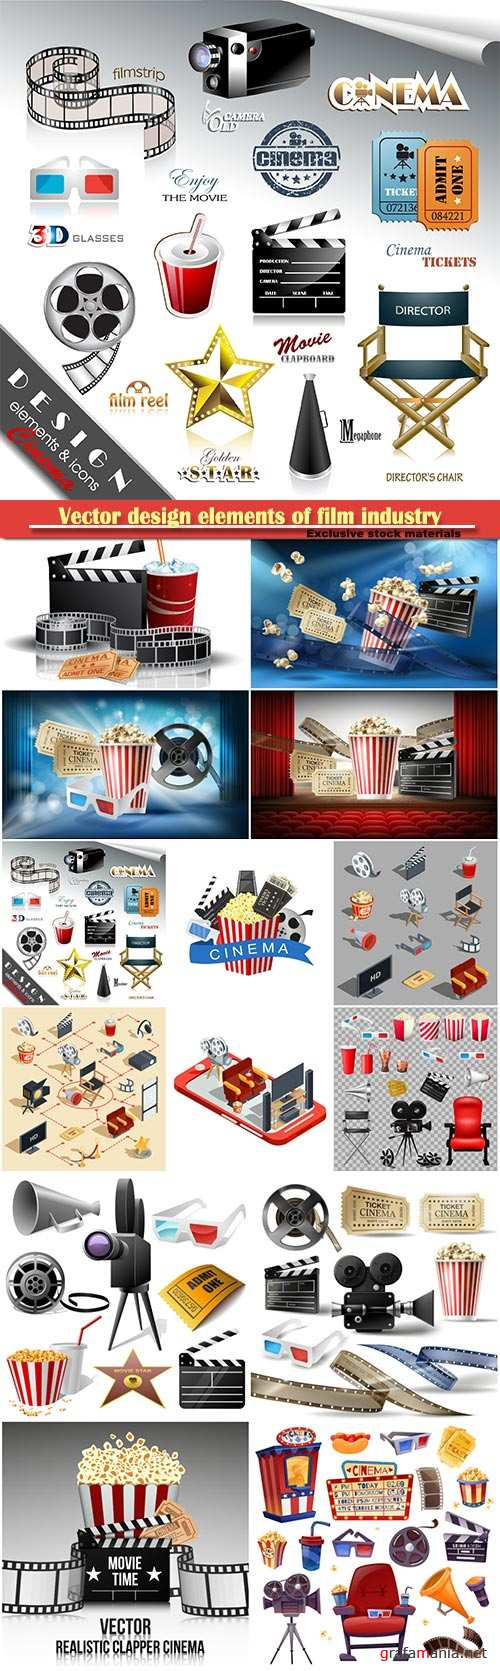 Vector design elements of film industry, popcorn, reel, tape, glasses, camcorder, movie tickets and clapper board